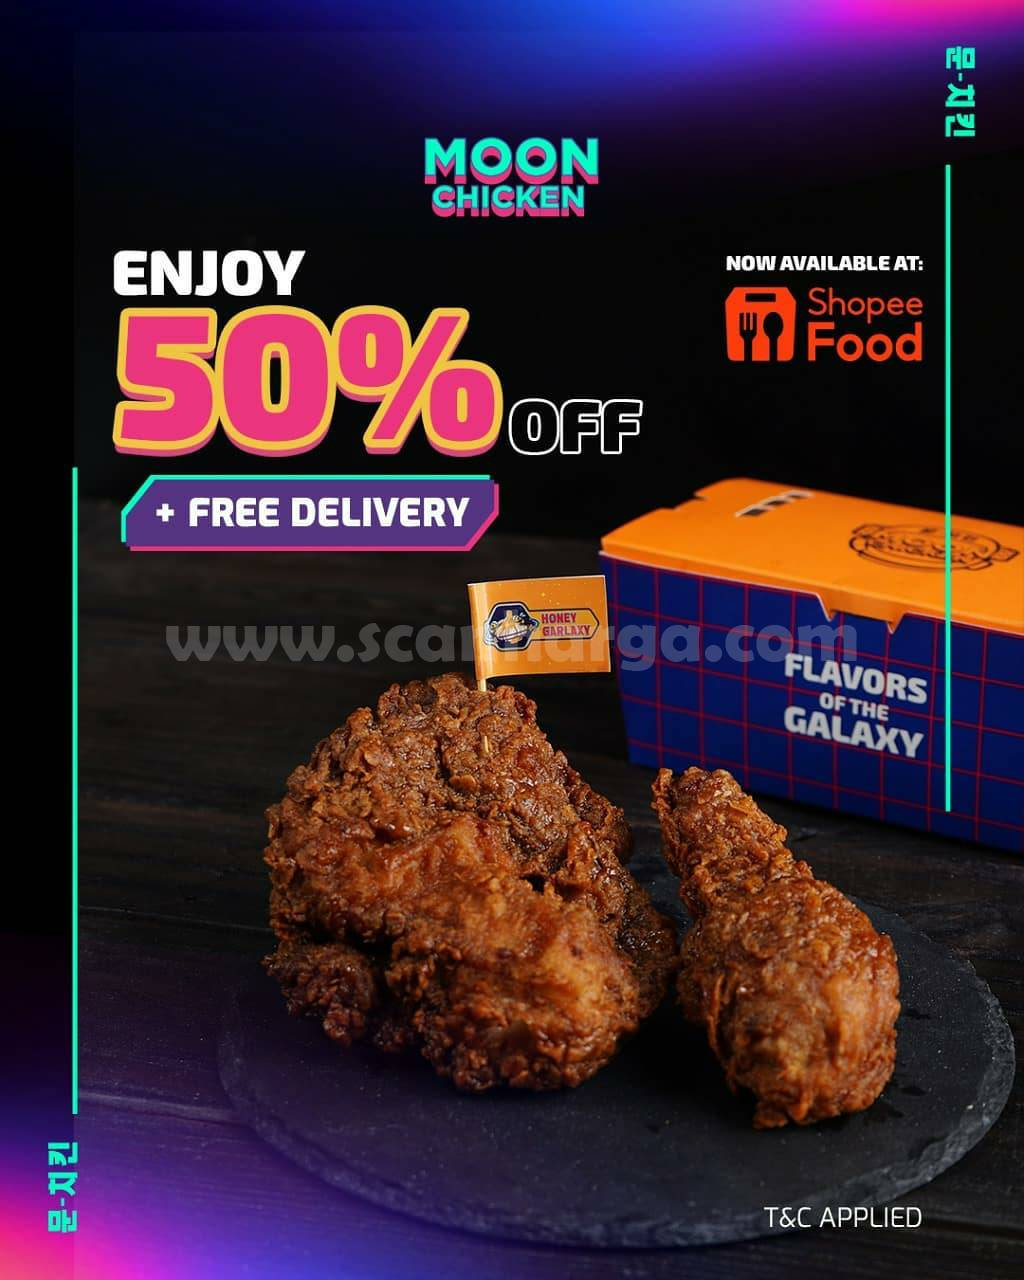 MOON CHICKEN Promo DISKON 50% + FREE DELIVERY on ShopeeFood